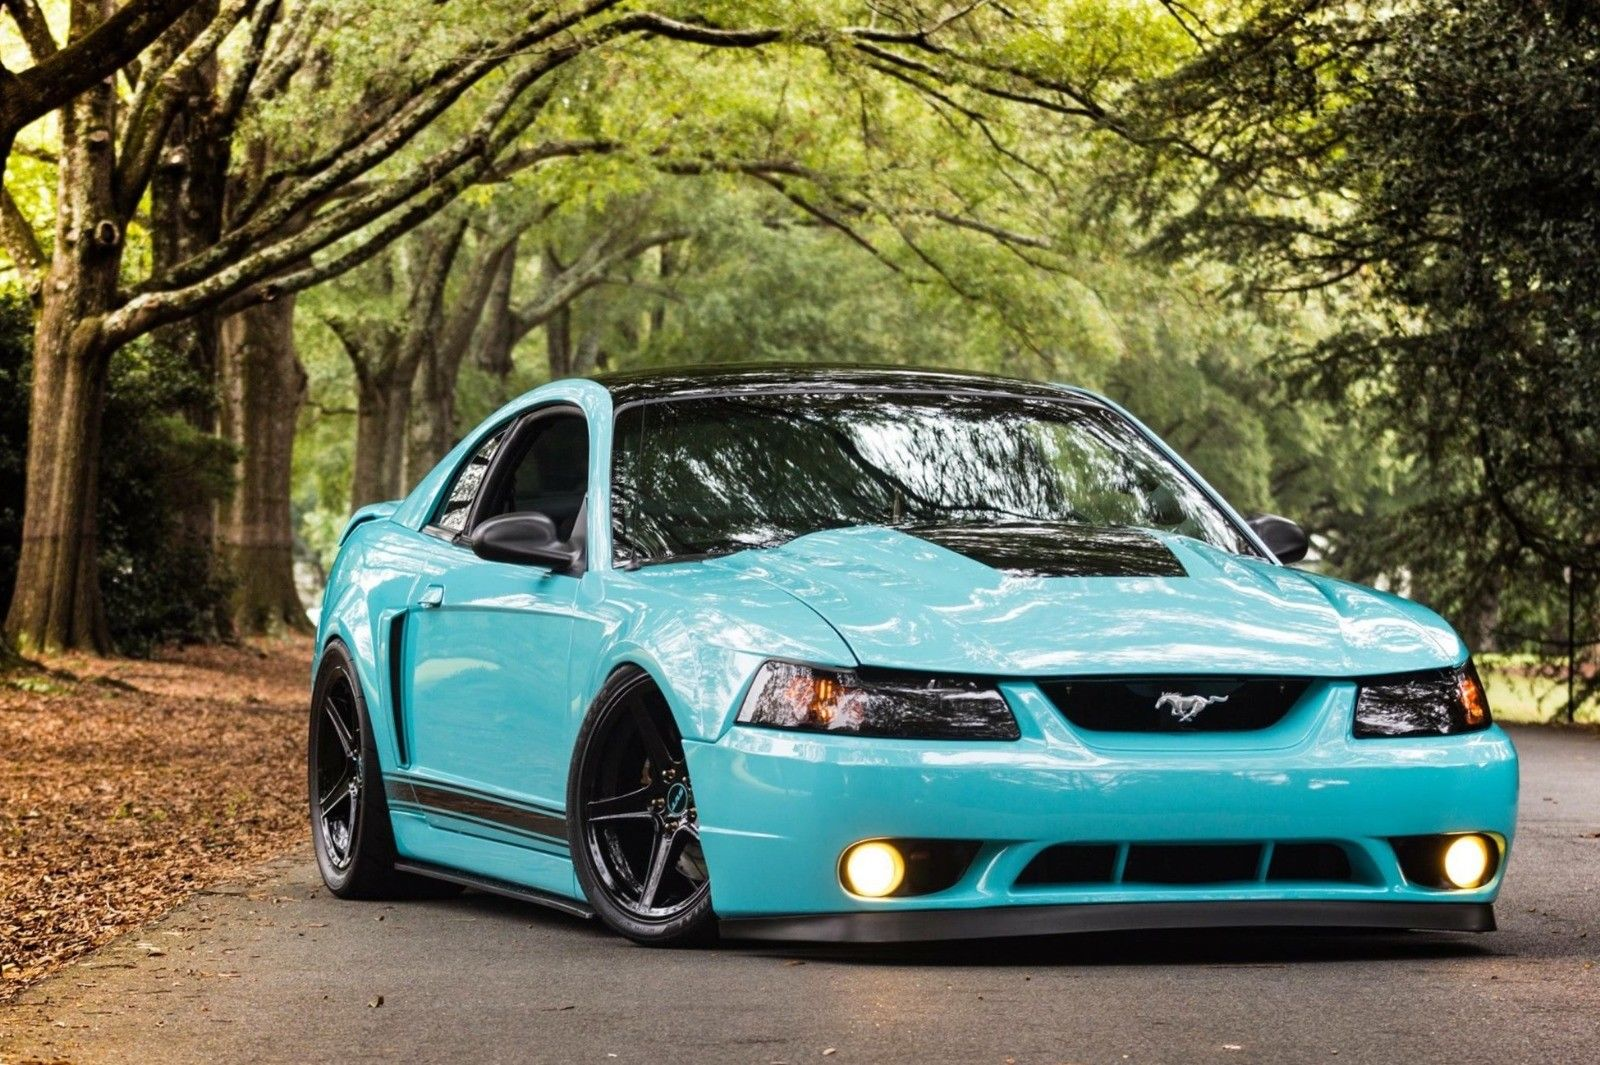 99 Ford Mustang Gt